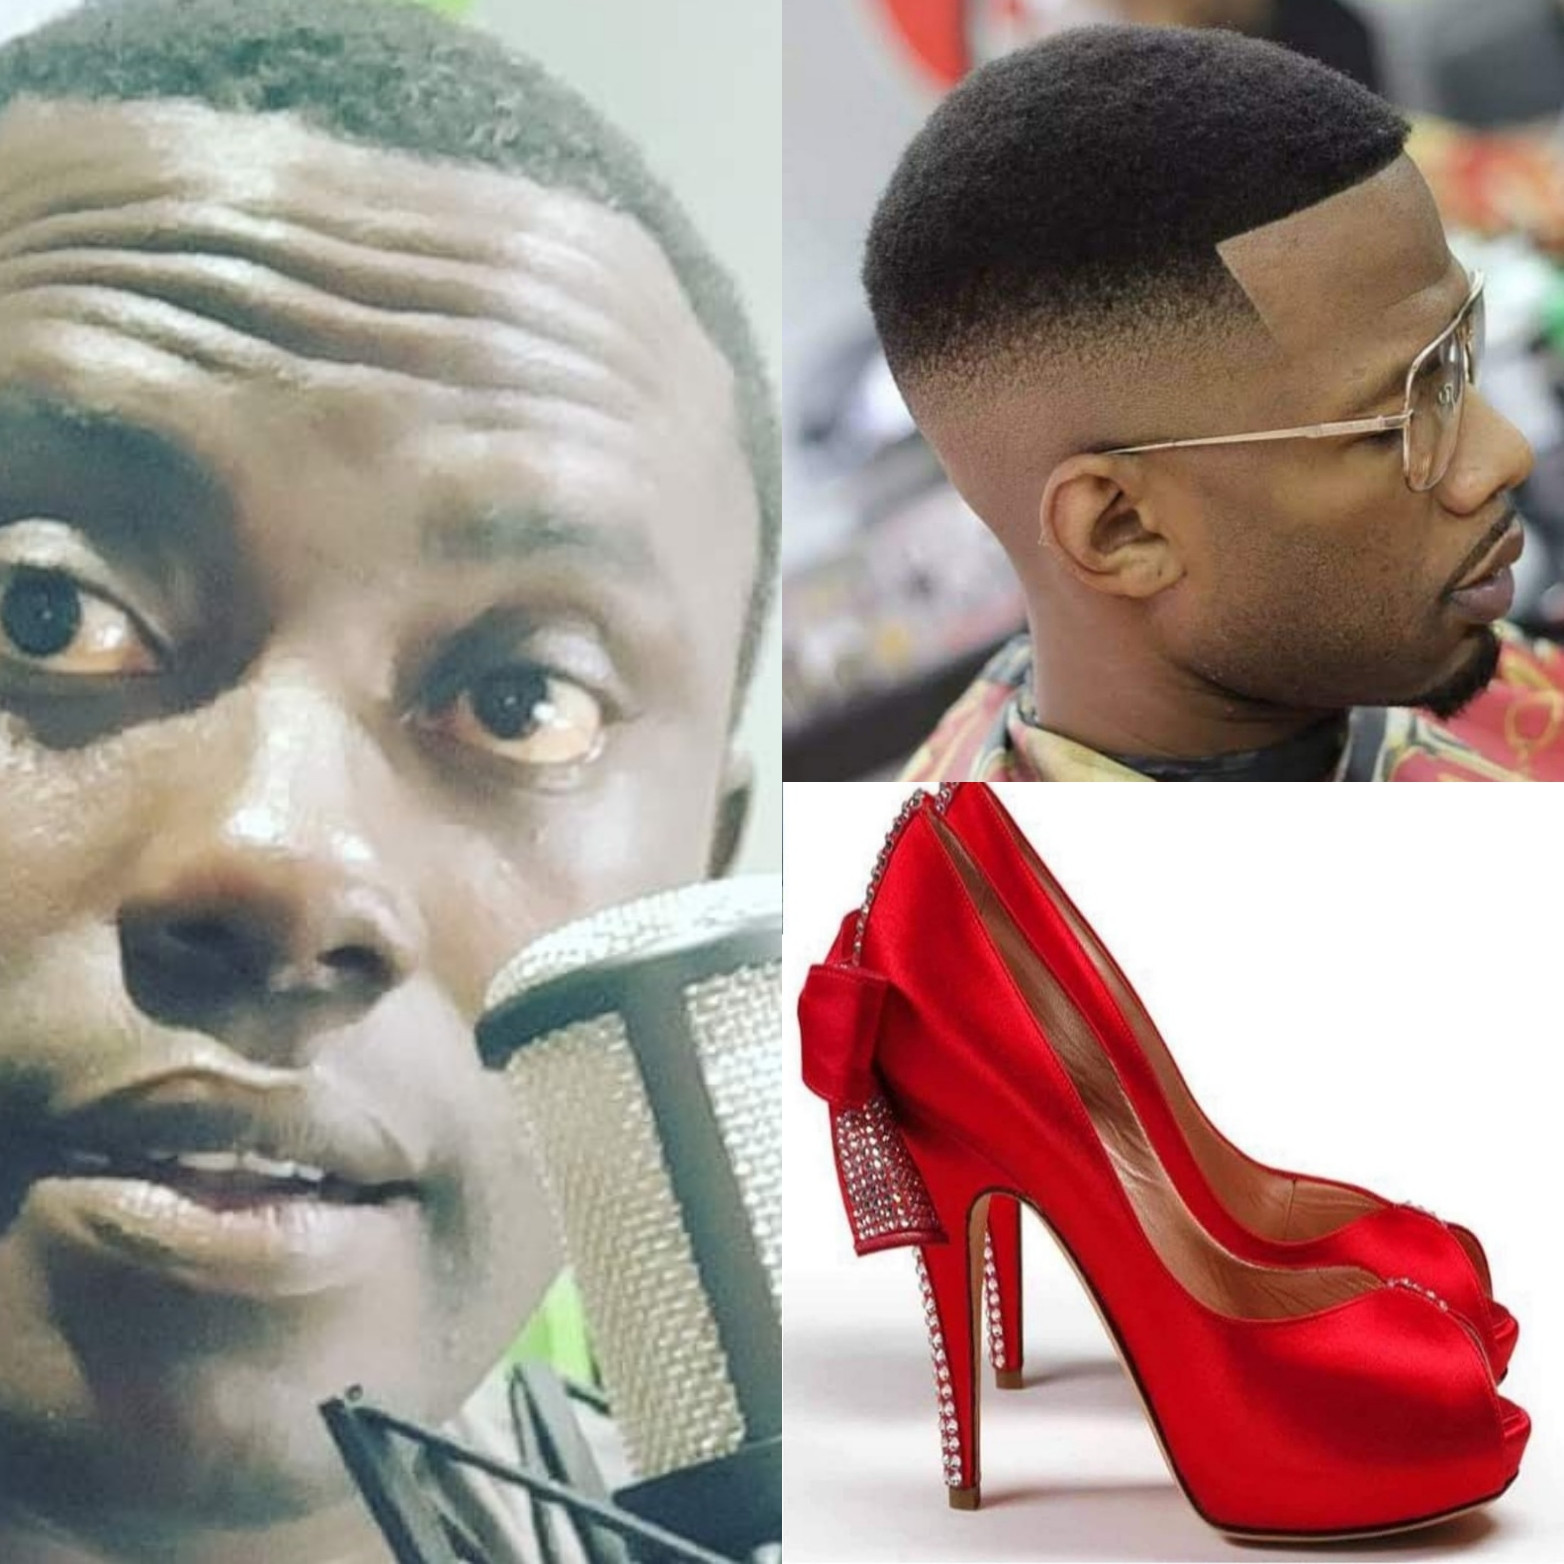 """612aaad46e5b7 - """"No godly lady will wear high heel"""" Pastor warns women and men about the things they are doing that could 'lead them to hell'"""